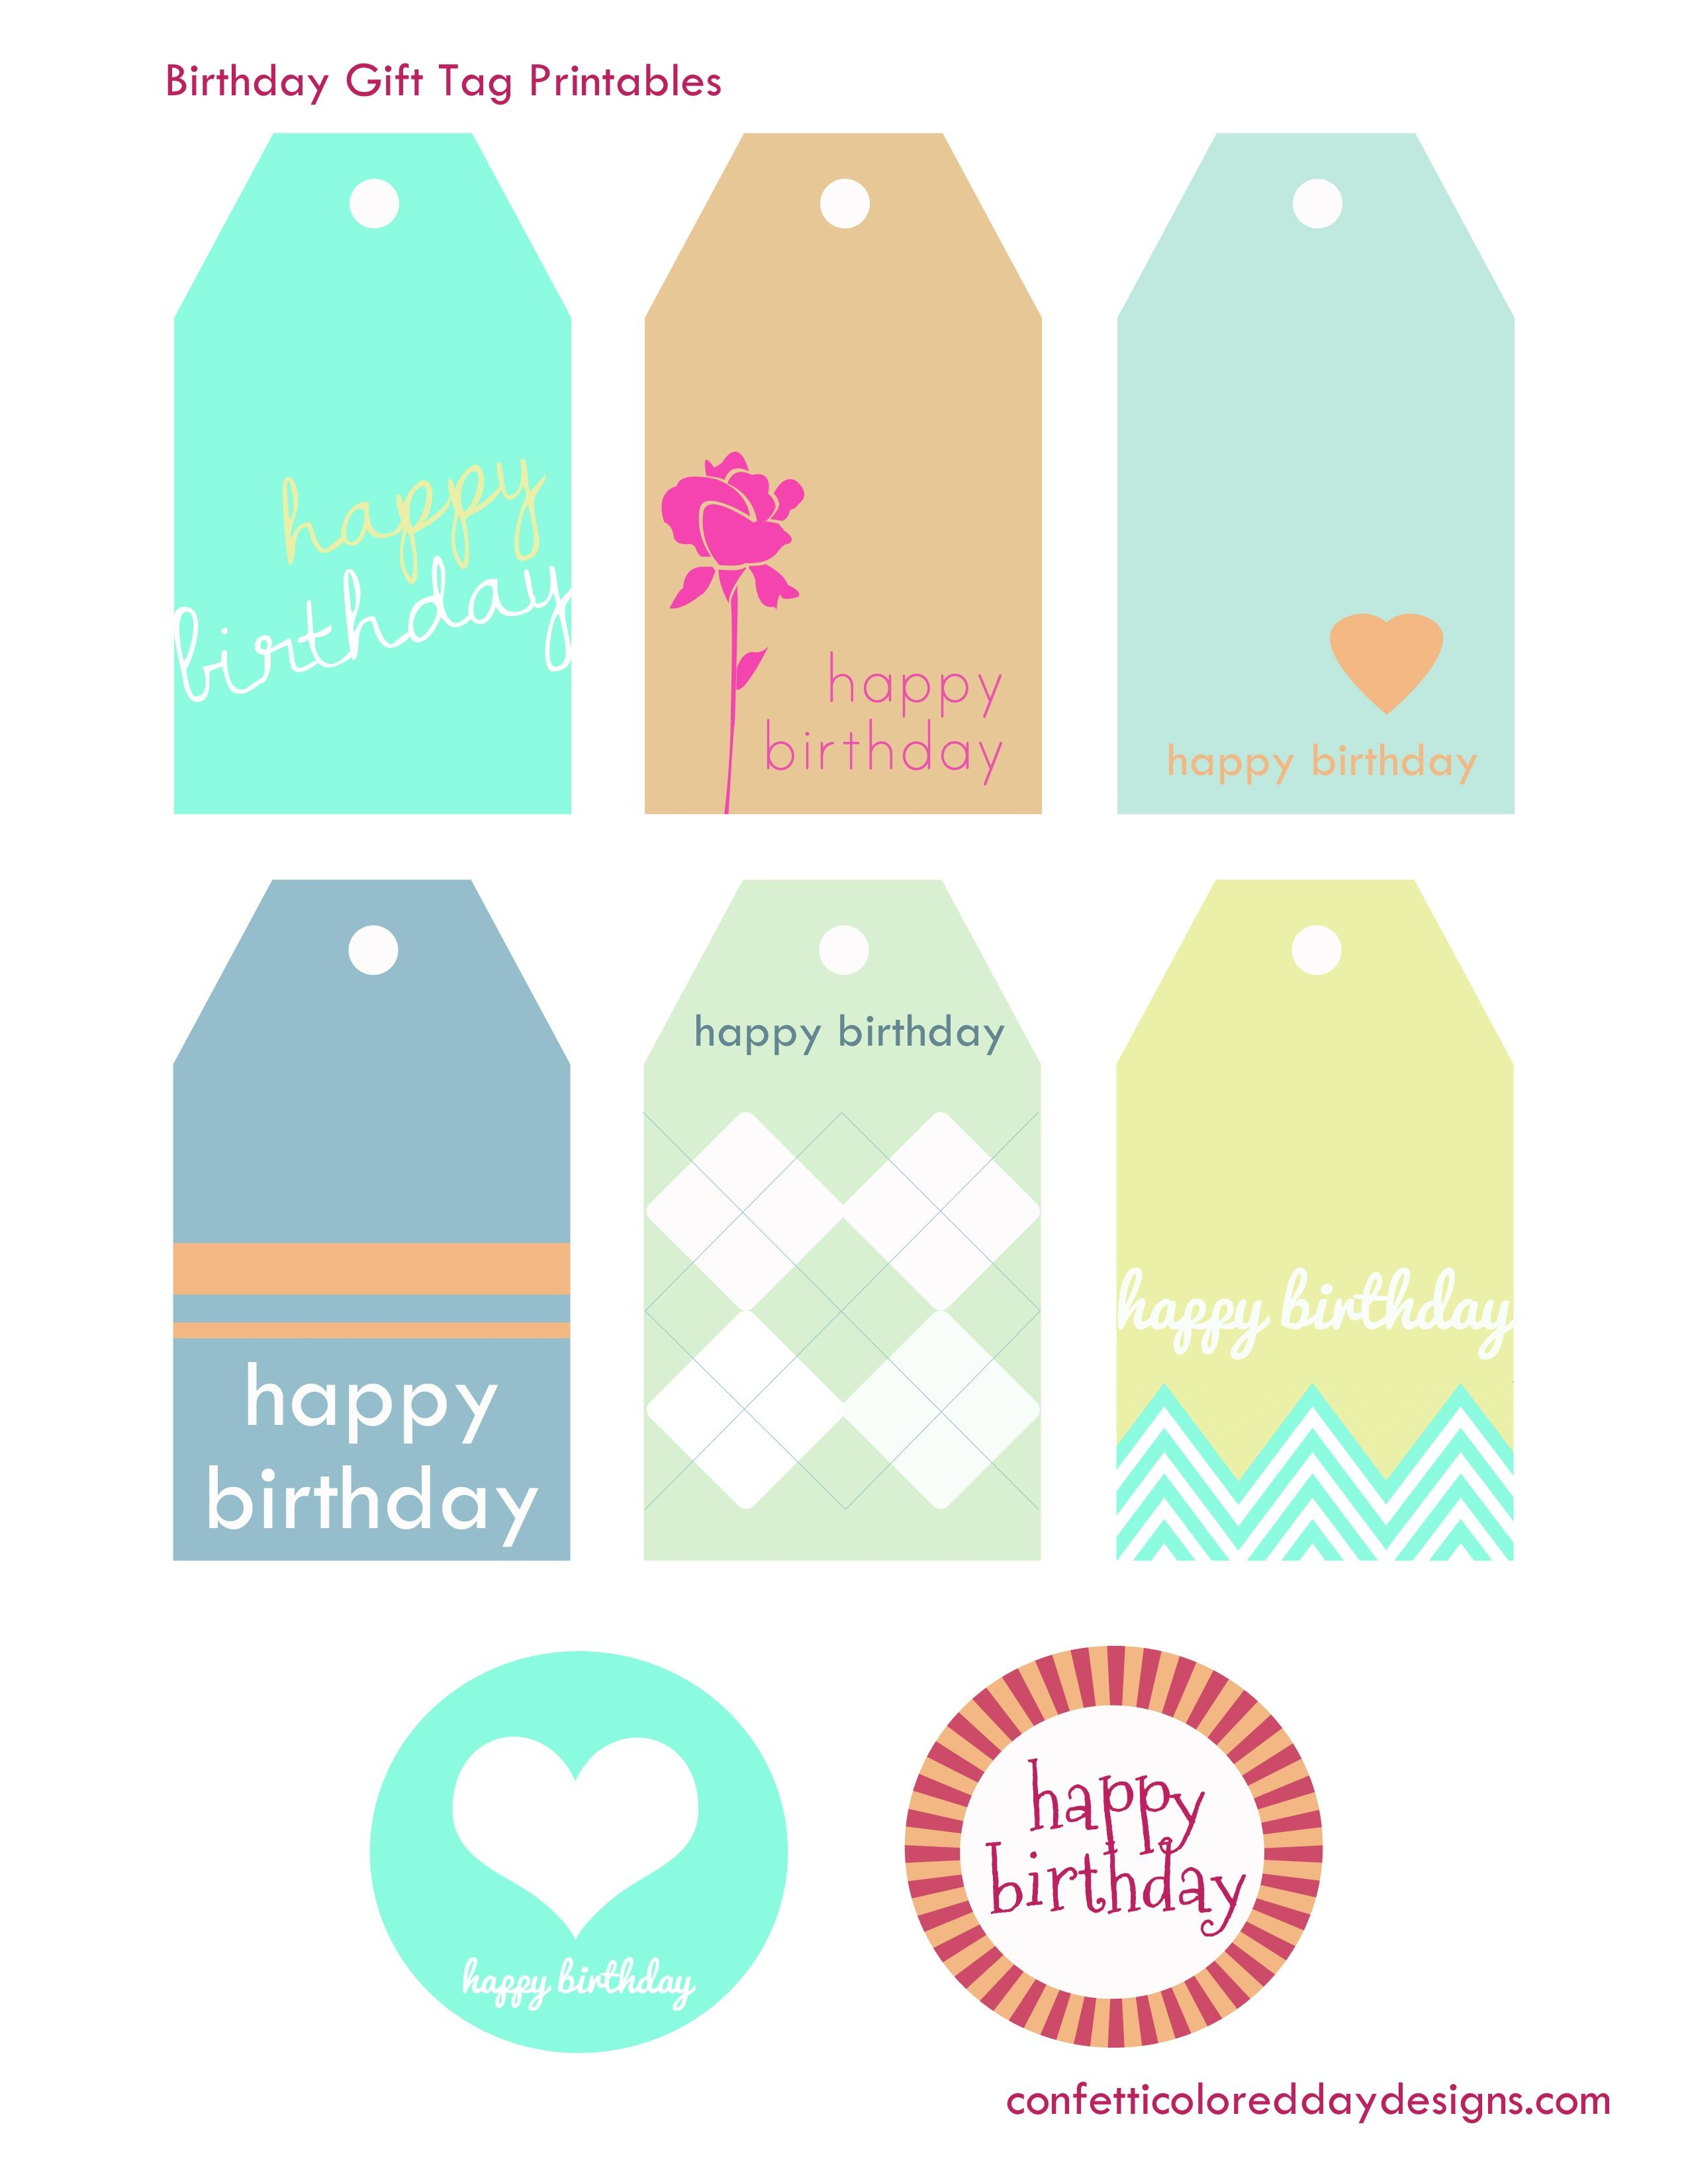 Pinmaheen Khan On Cards, Gifts & Gift Wraps | Birthday Tags - Free Printable Birthday Tags